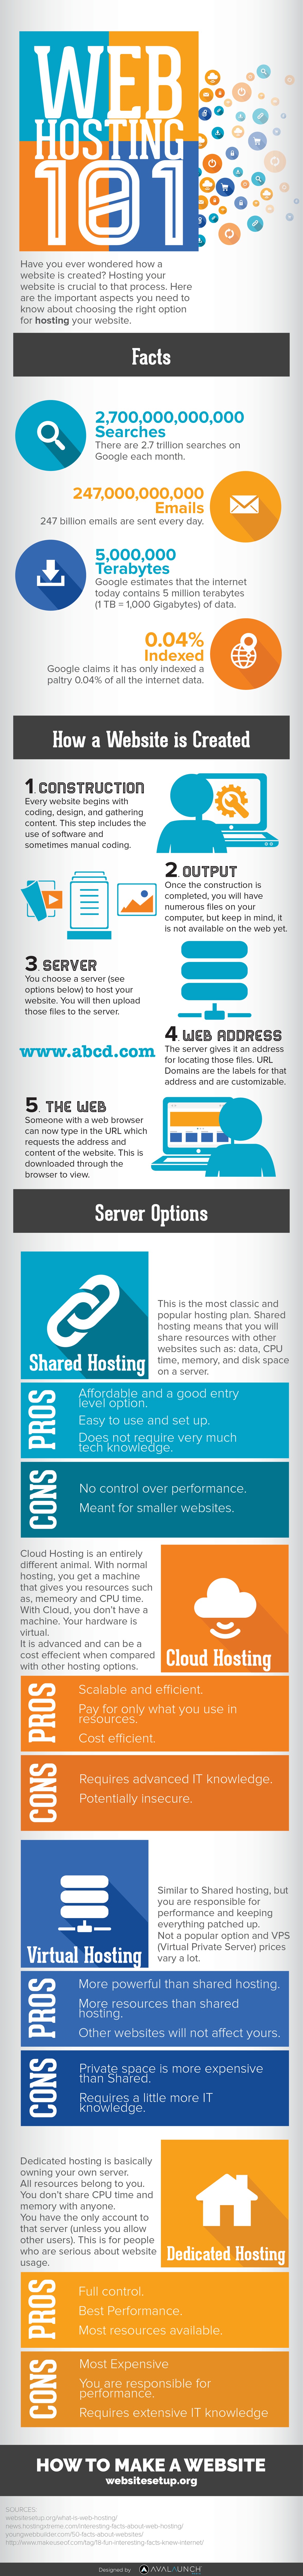 What is Web Hosting - comparison infographic